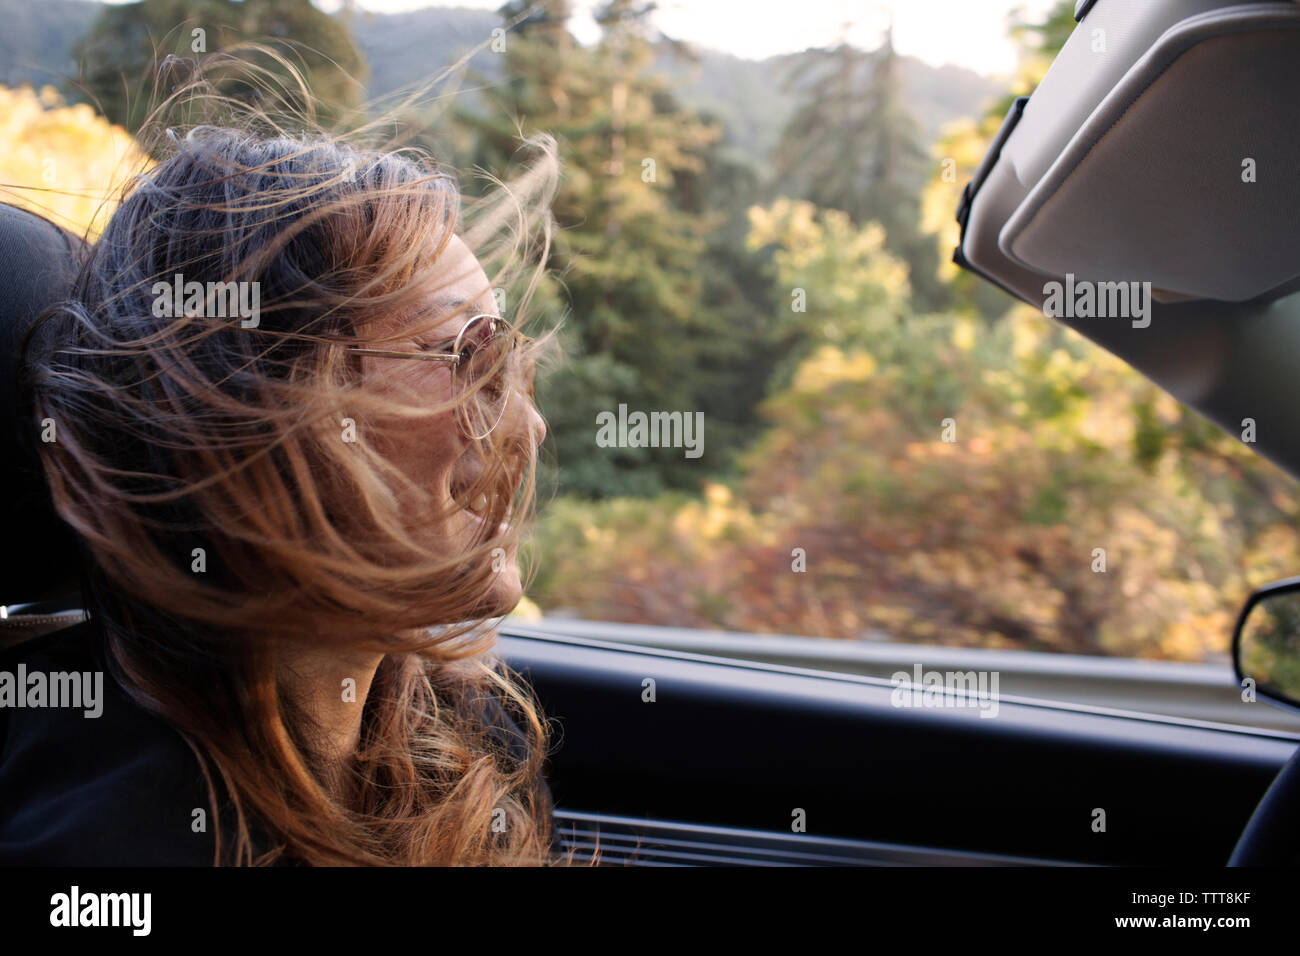 Happy woman with tousled hair riding in convertible car - Stock Image